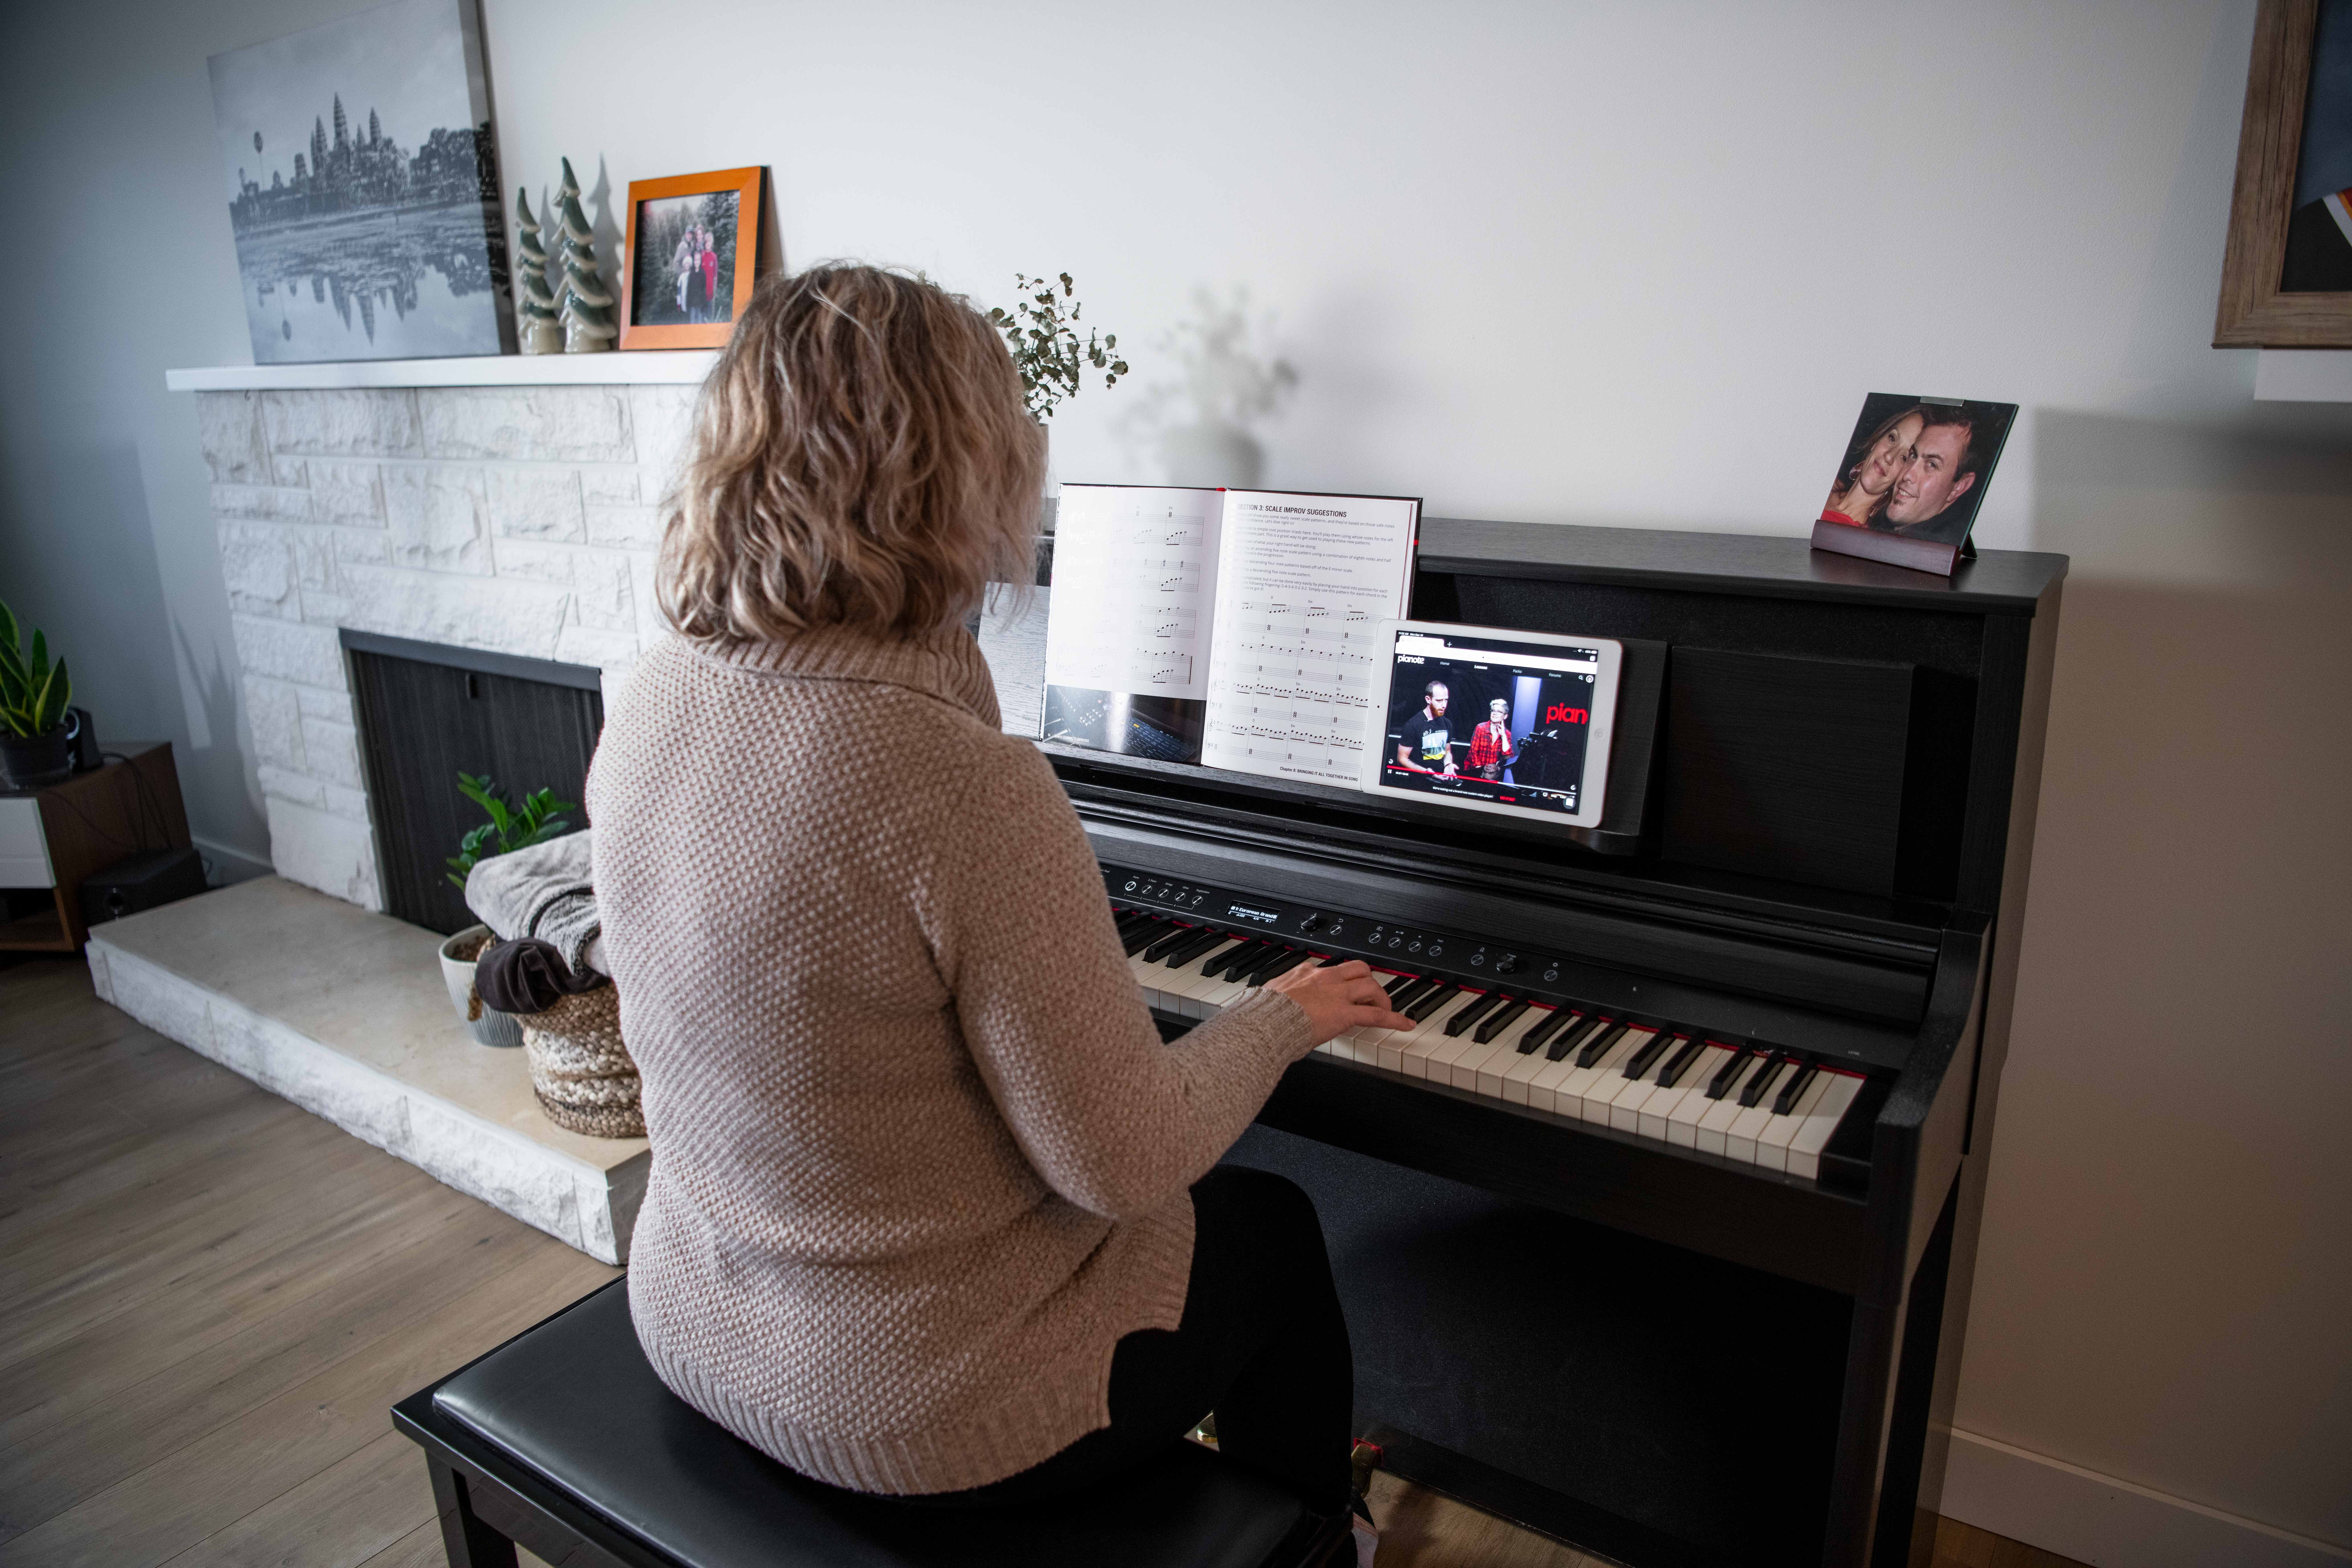 Woman playing console keyboard (upright piano) at home with book and iPad.